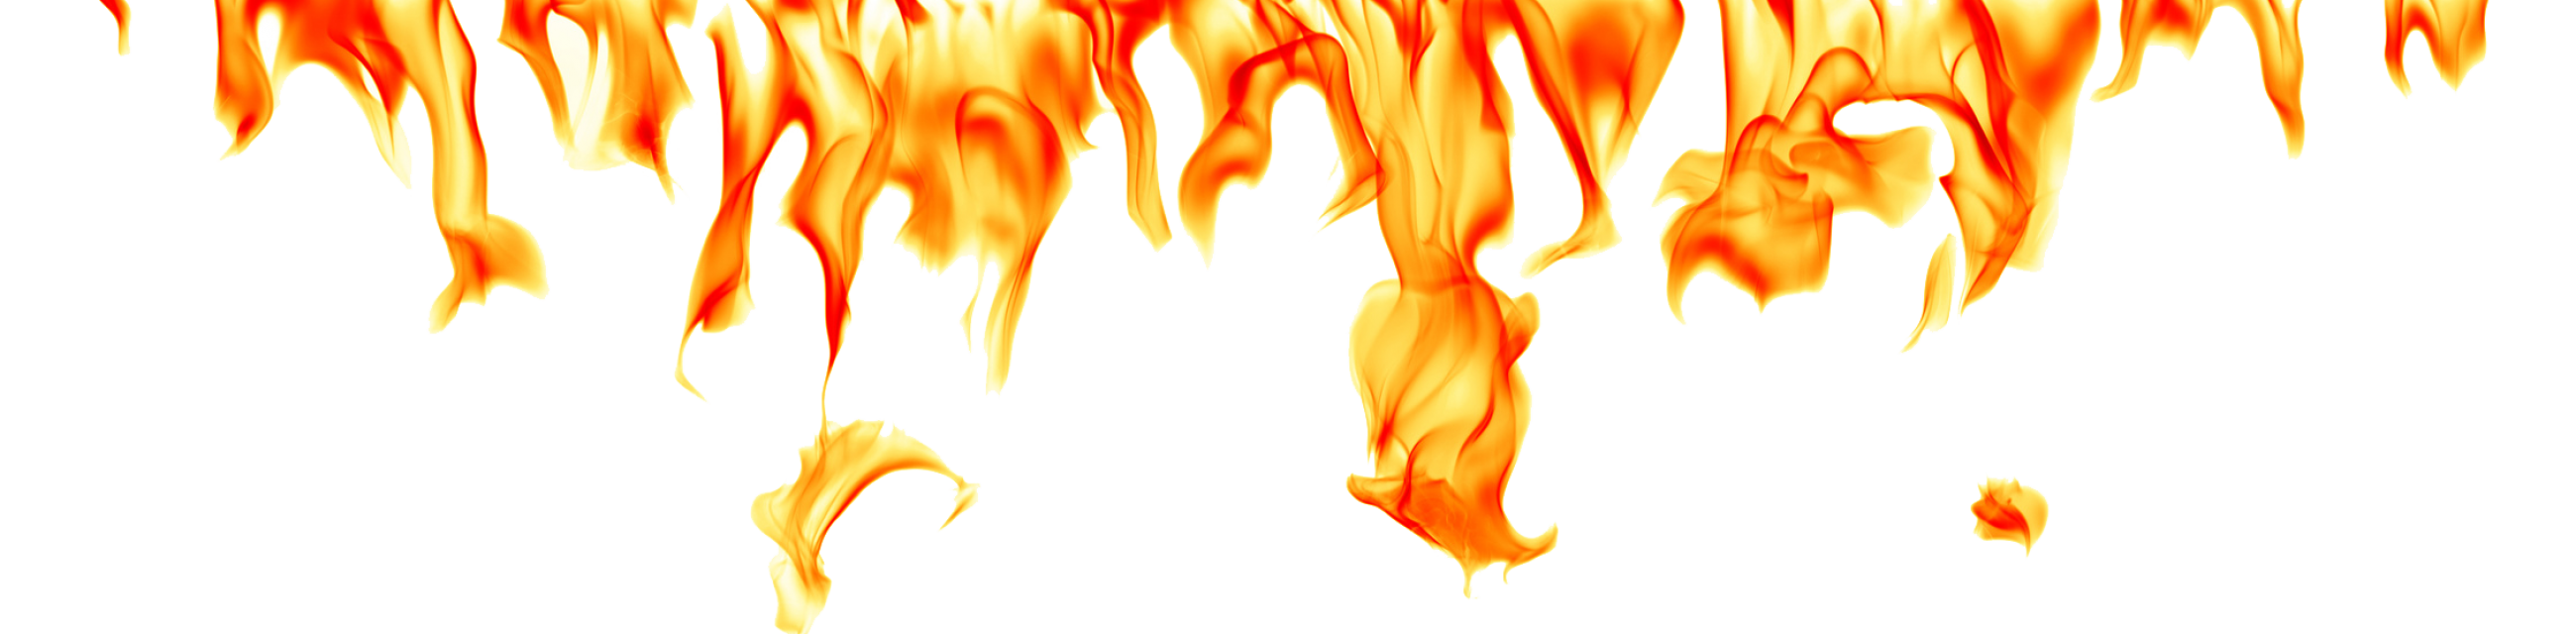 Grill flames png. About pop hop skip